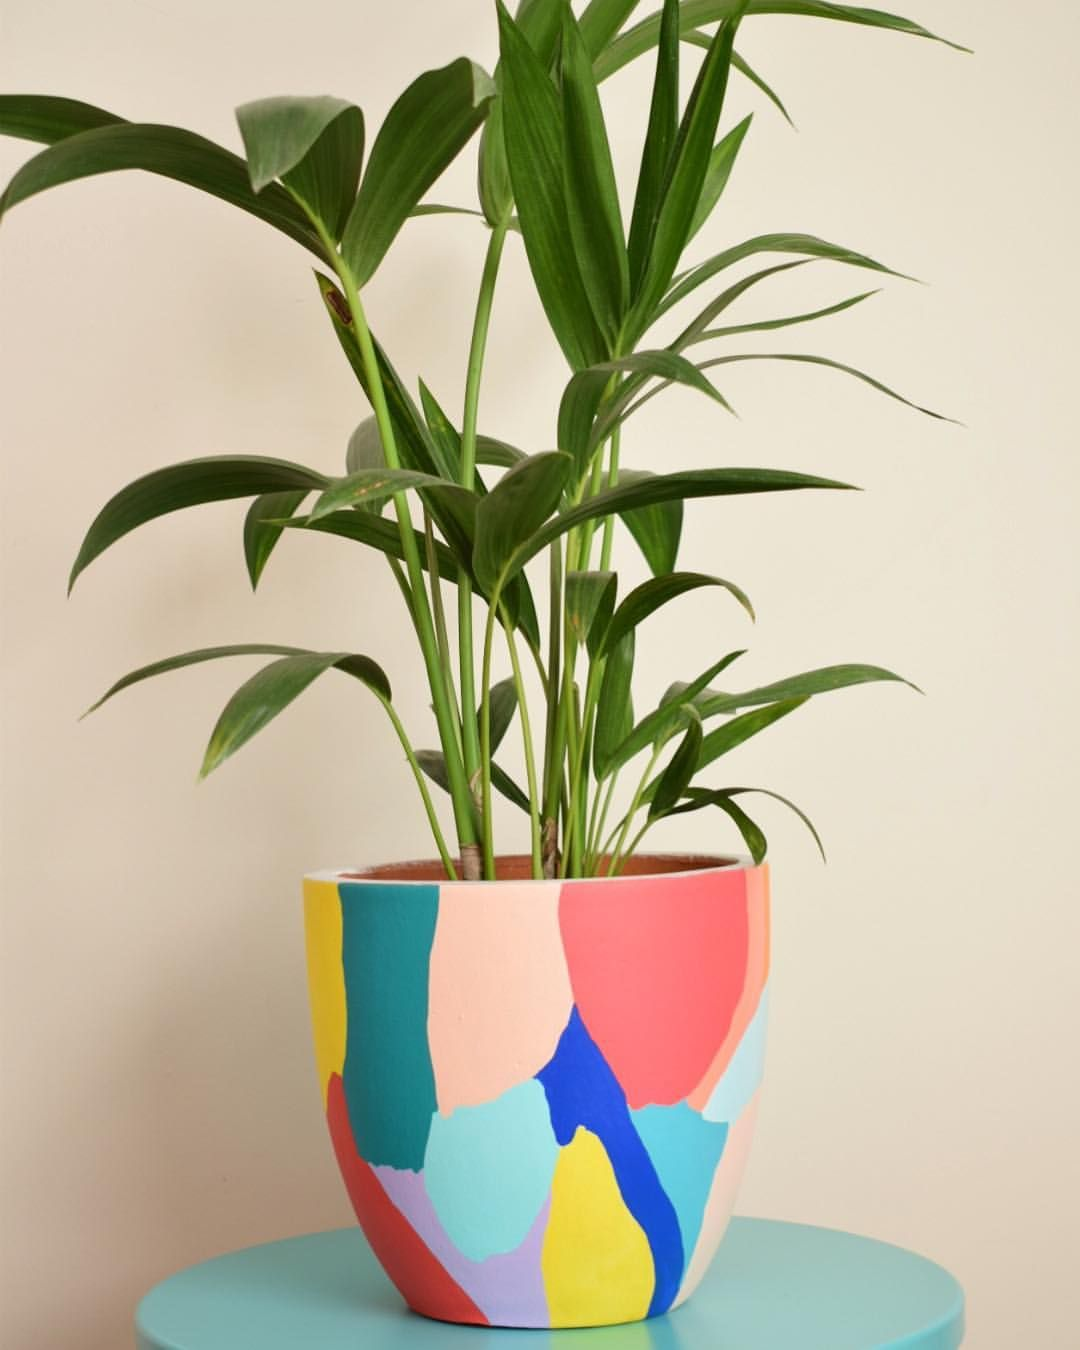 Diy Planters With Colorful Abstract Painting Painted Plant Pots Diy Flower Pots Painted Pots Diy